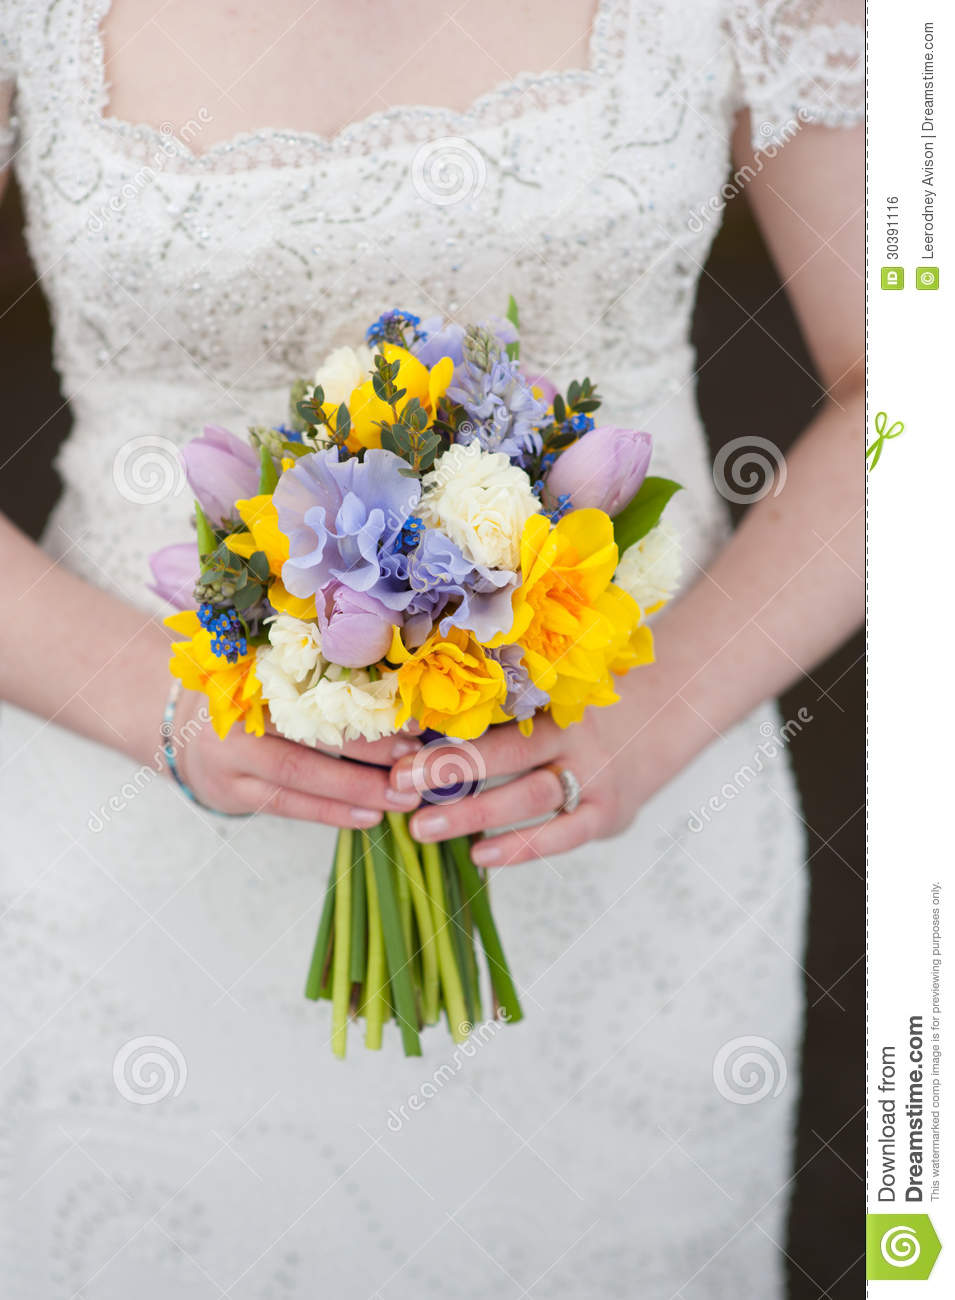 Daffodil And Rose Bouquet bouquet of spring flowers